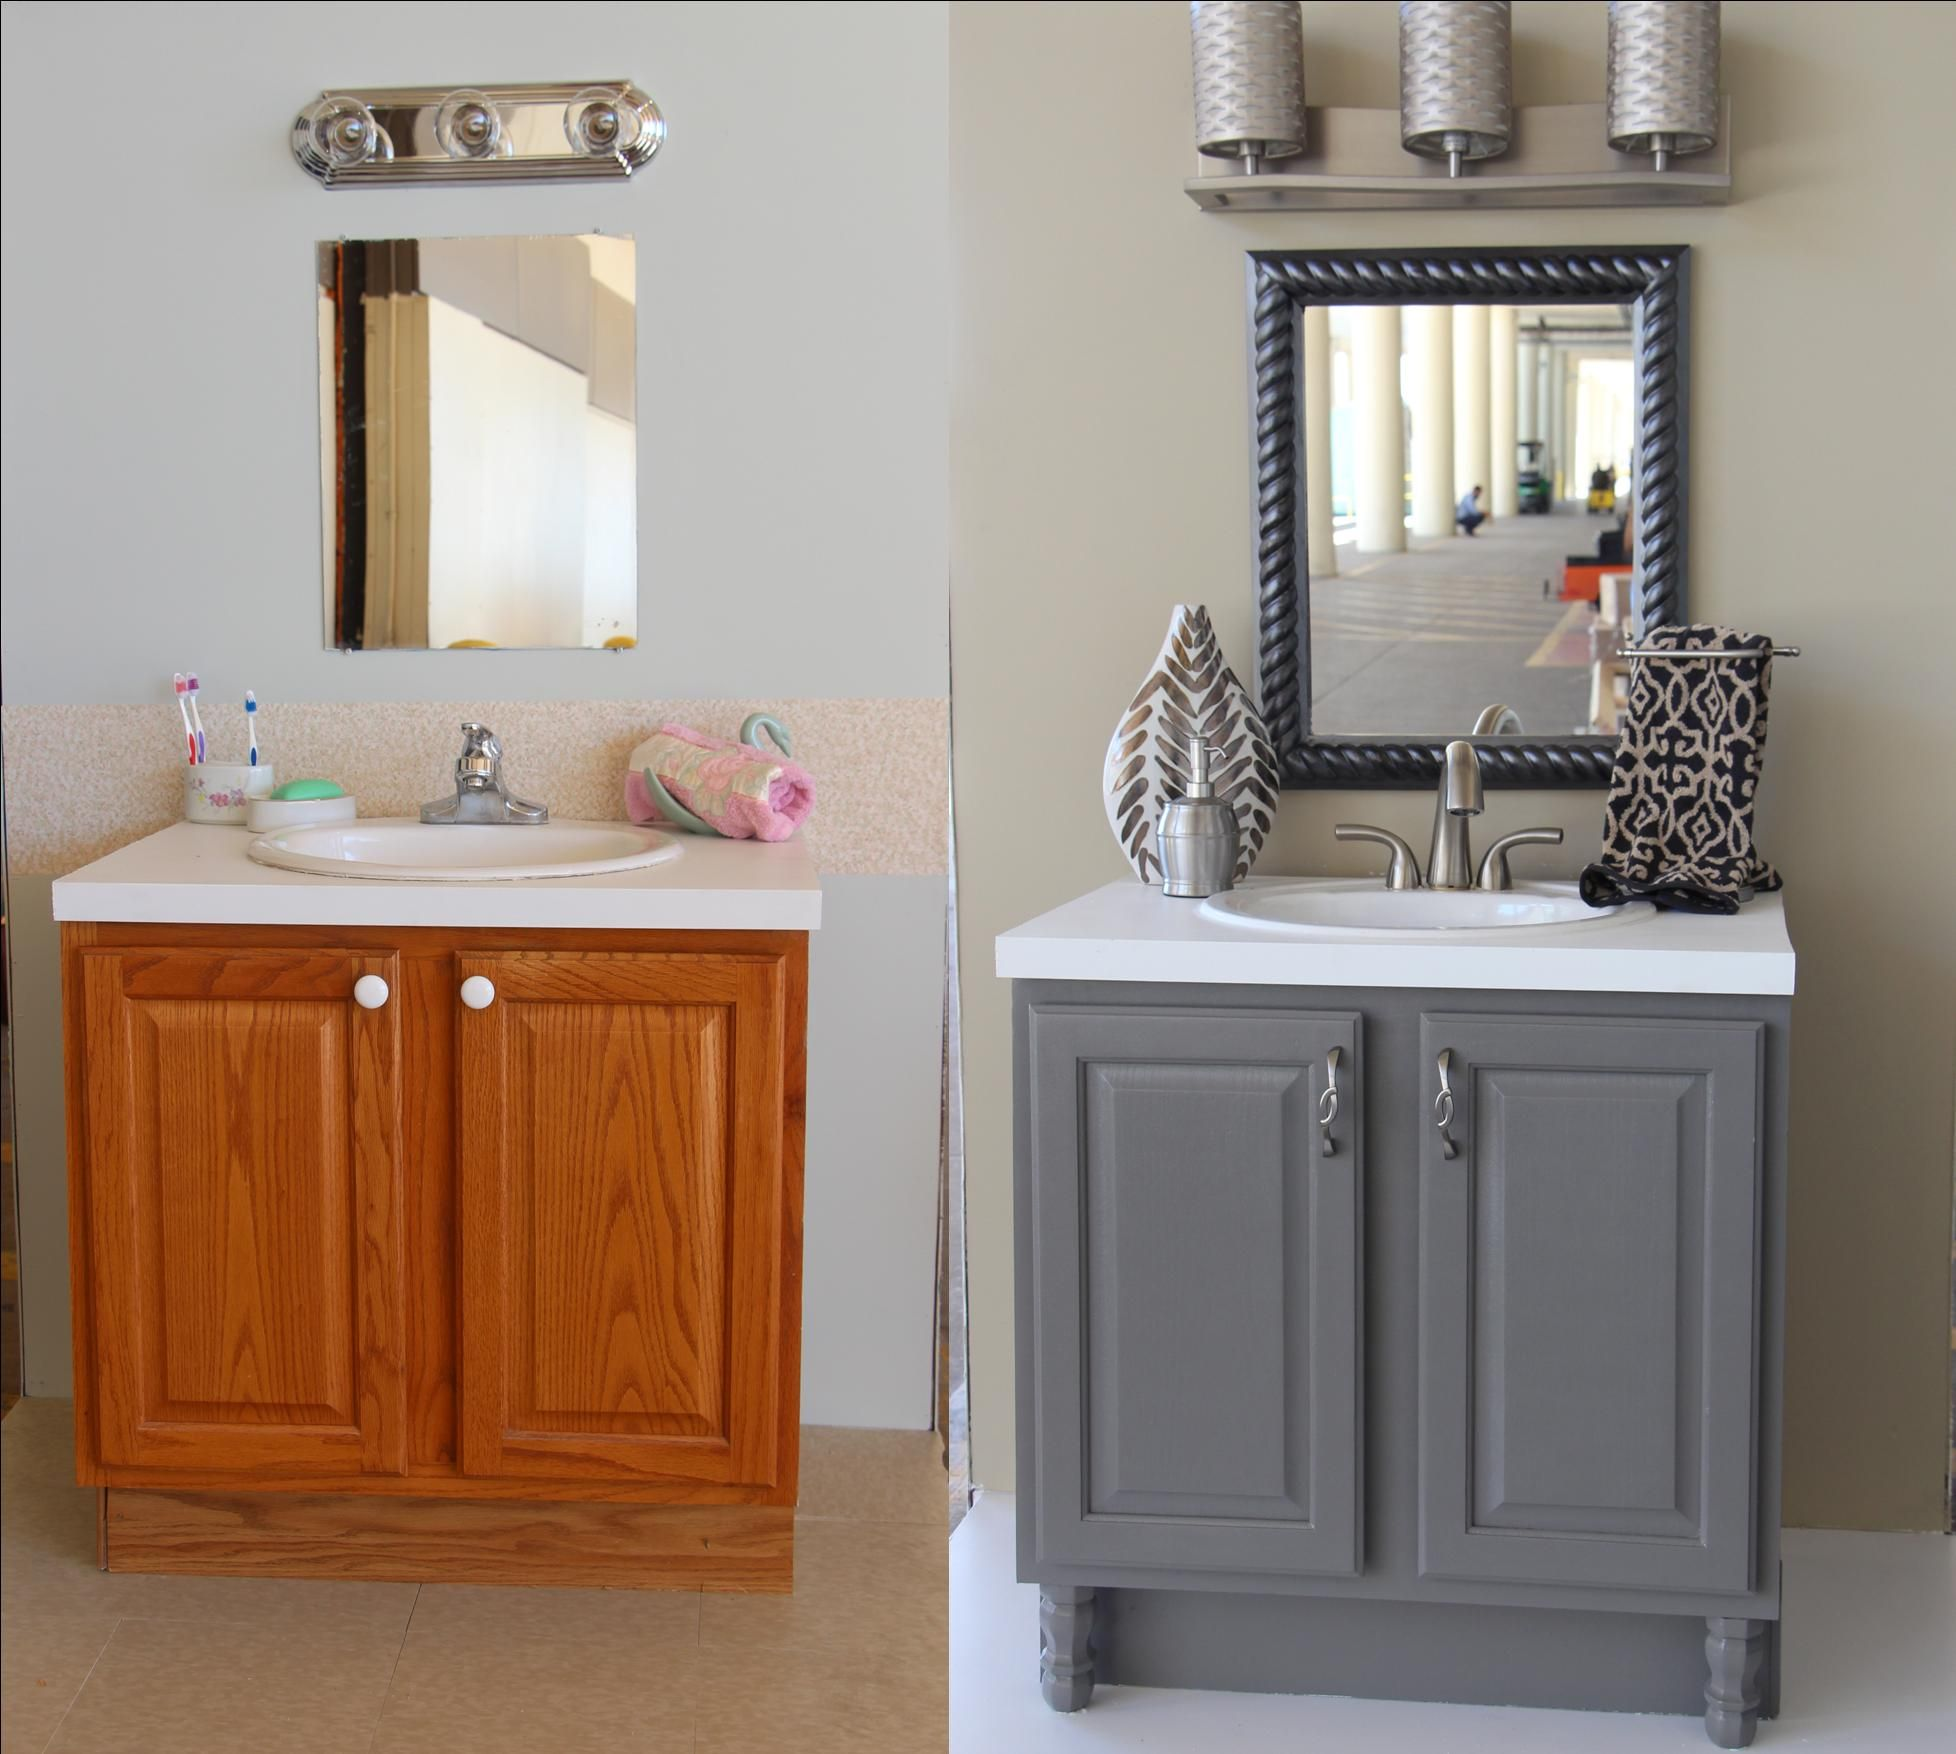 bathroom updates you can do this weekend rh pinterest com bathroom medicine cabinets diy refacing bathroom cabinets diy